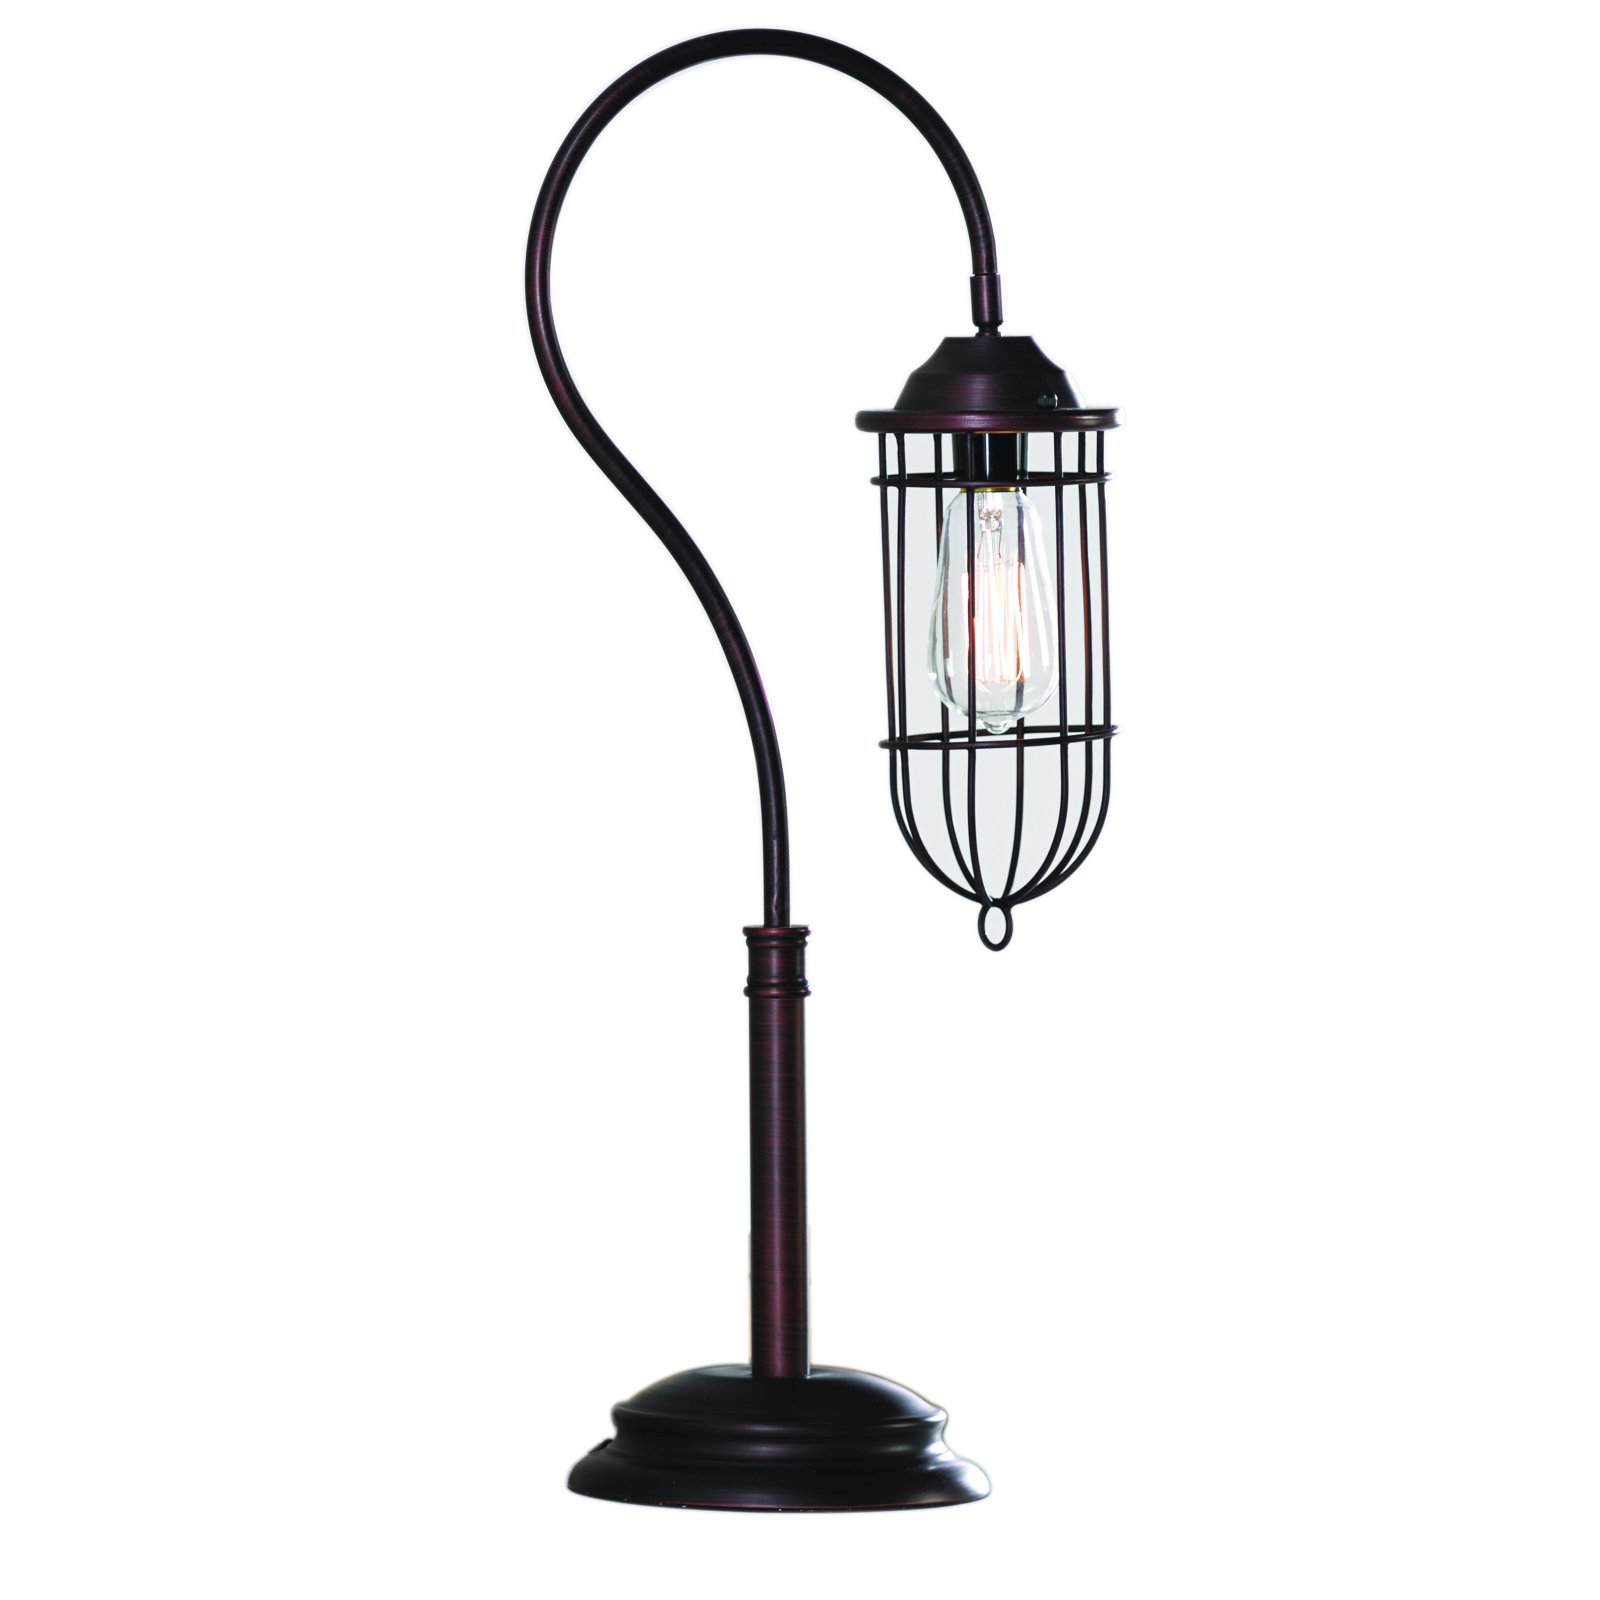 Normande Lighting Cage Style Table Lamp